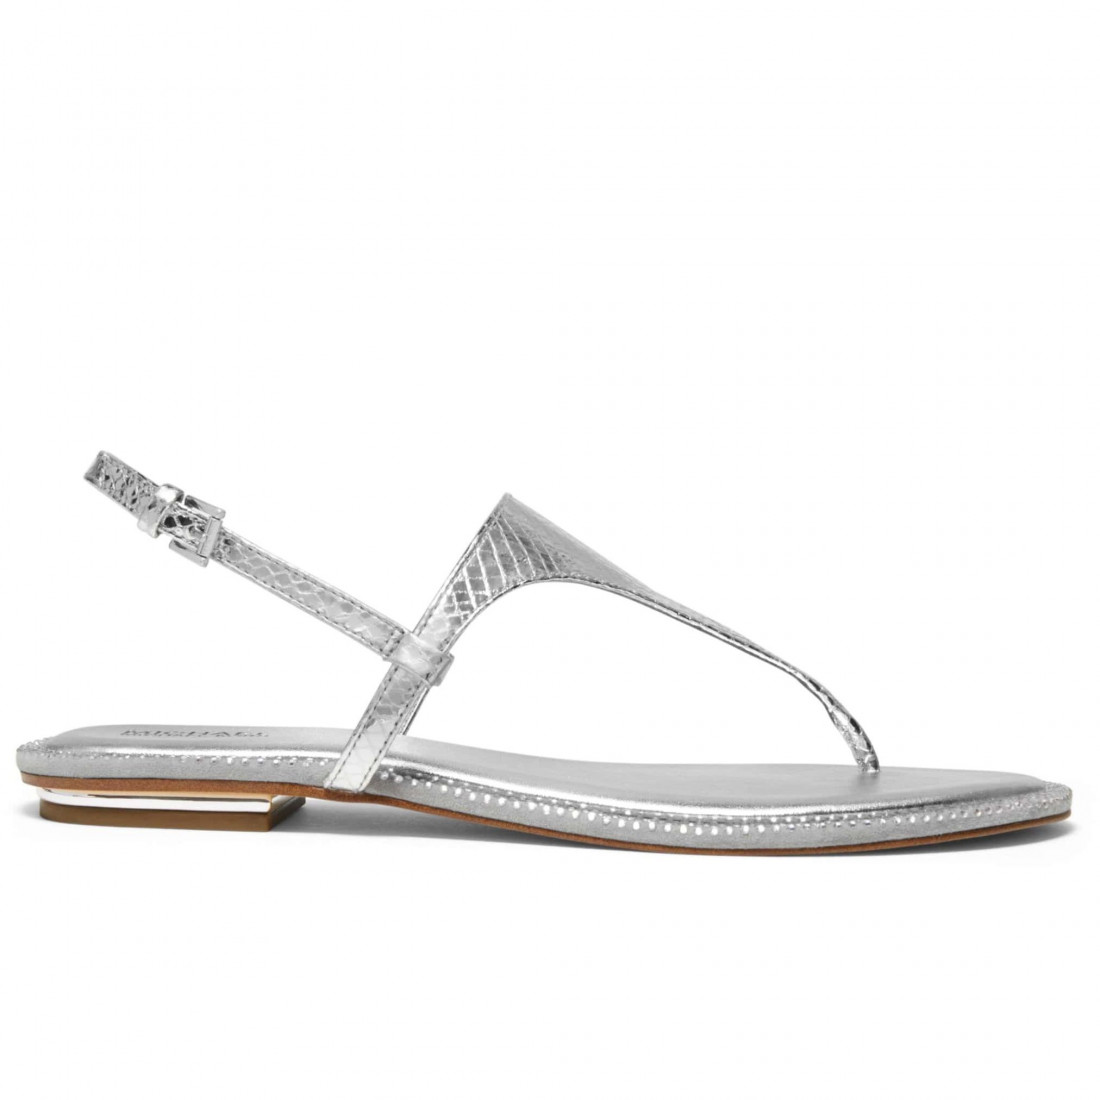 sandals woman michael kors 40s9enfa2m 040 7401